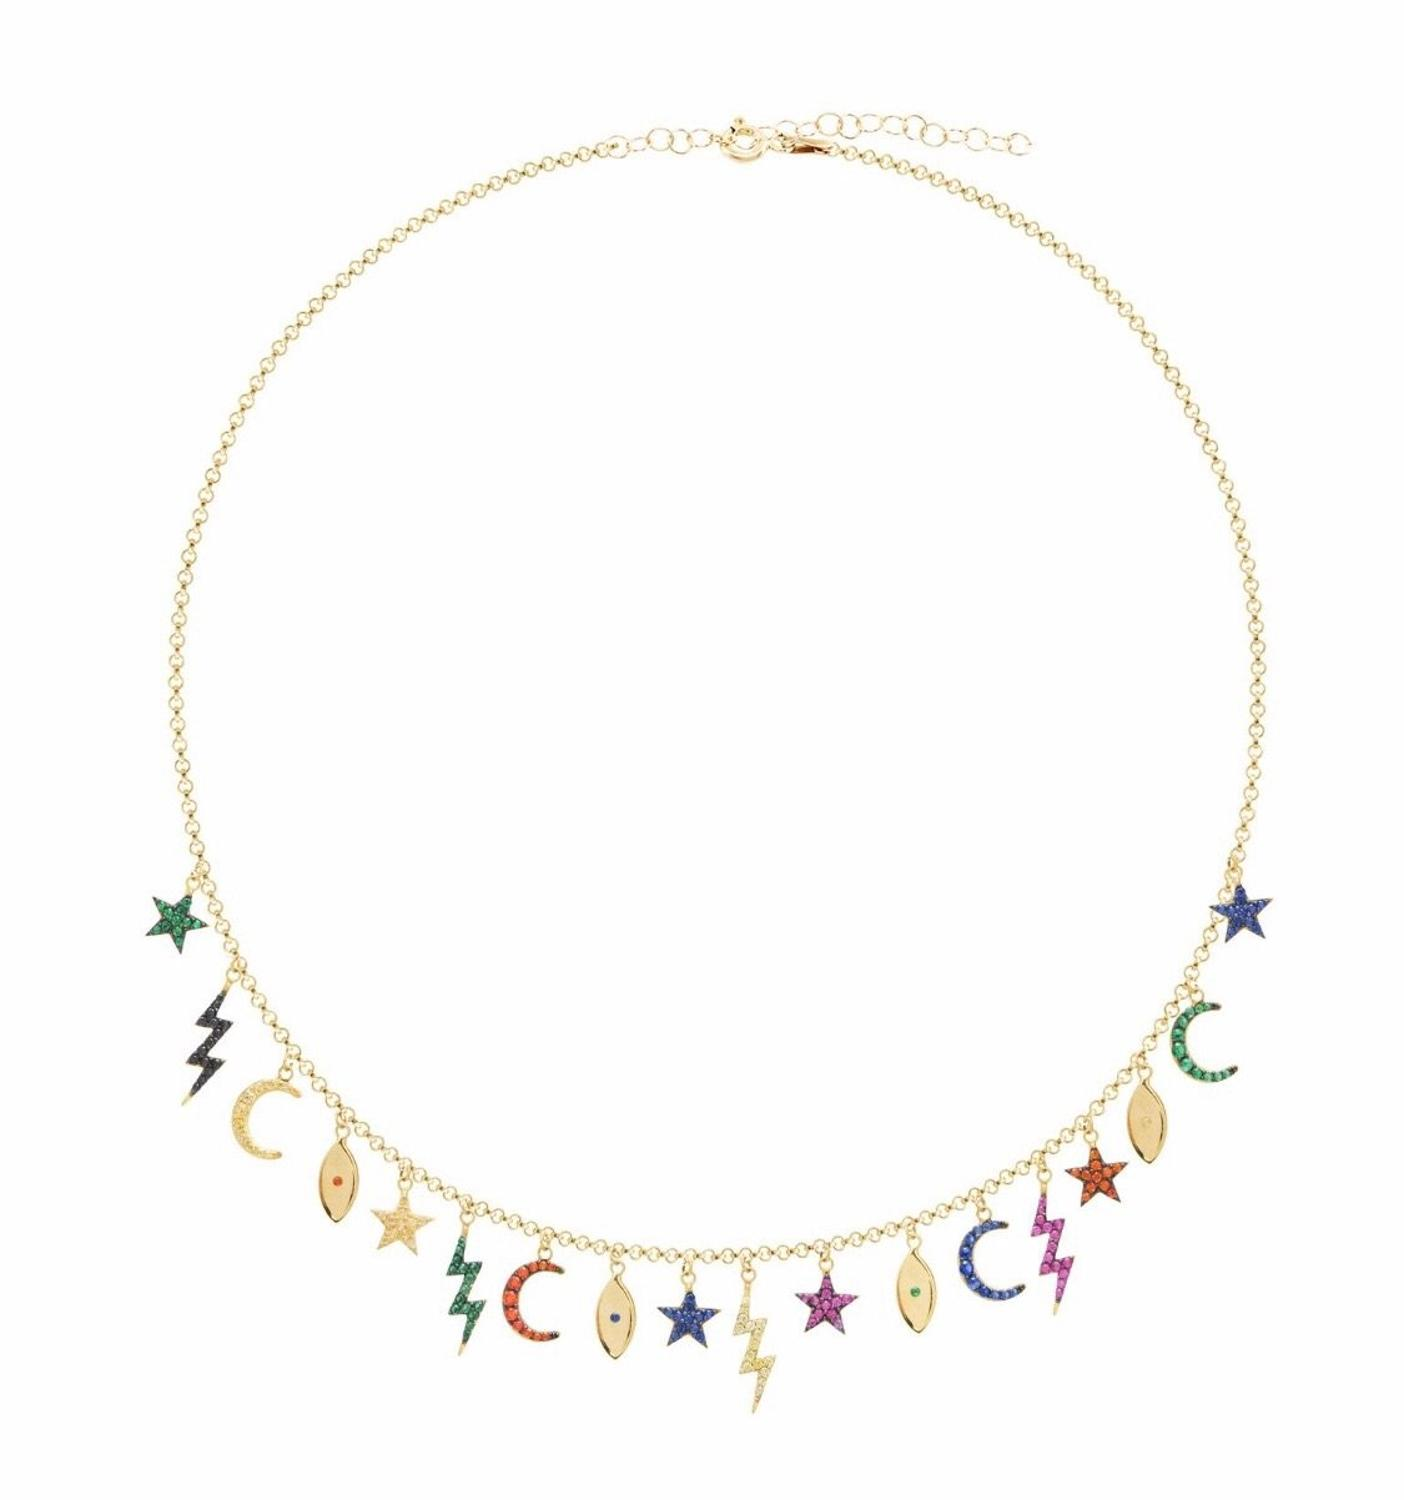 35+10cm choker women Necklace Lover's Gold Color Moon & Star eye lightning Pendant Necklace Engagement Jewelry